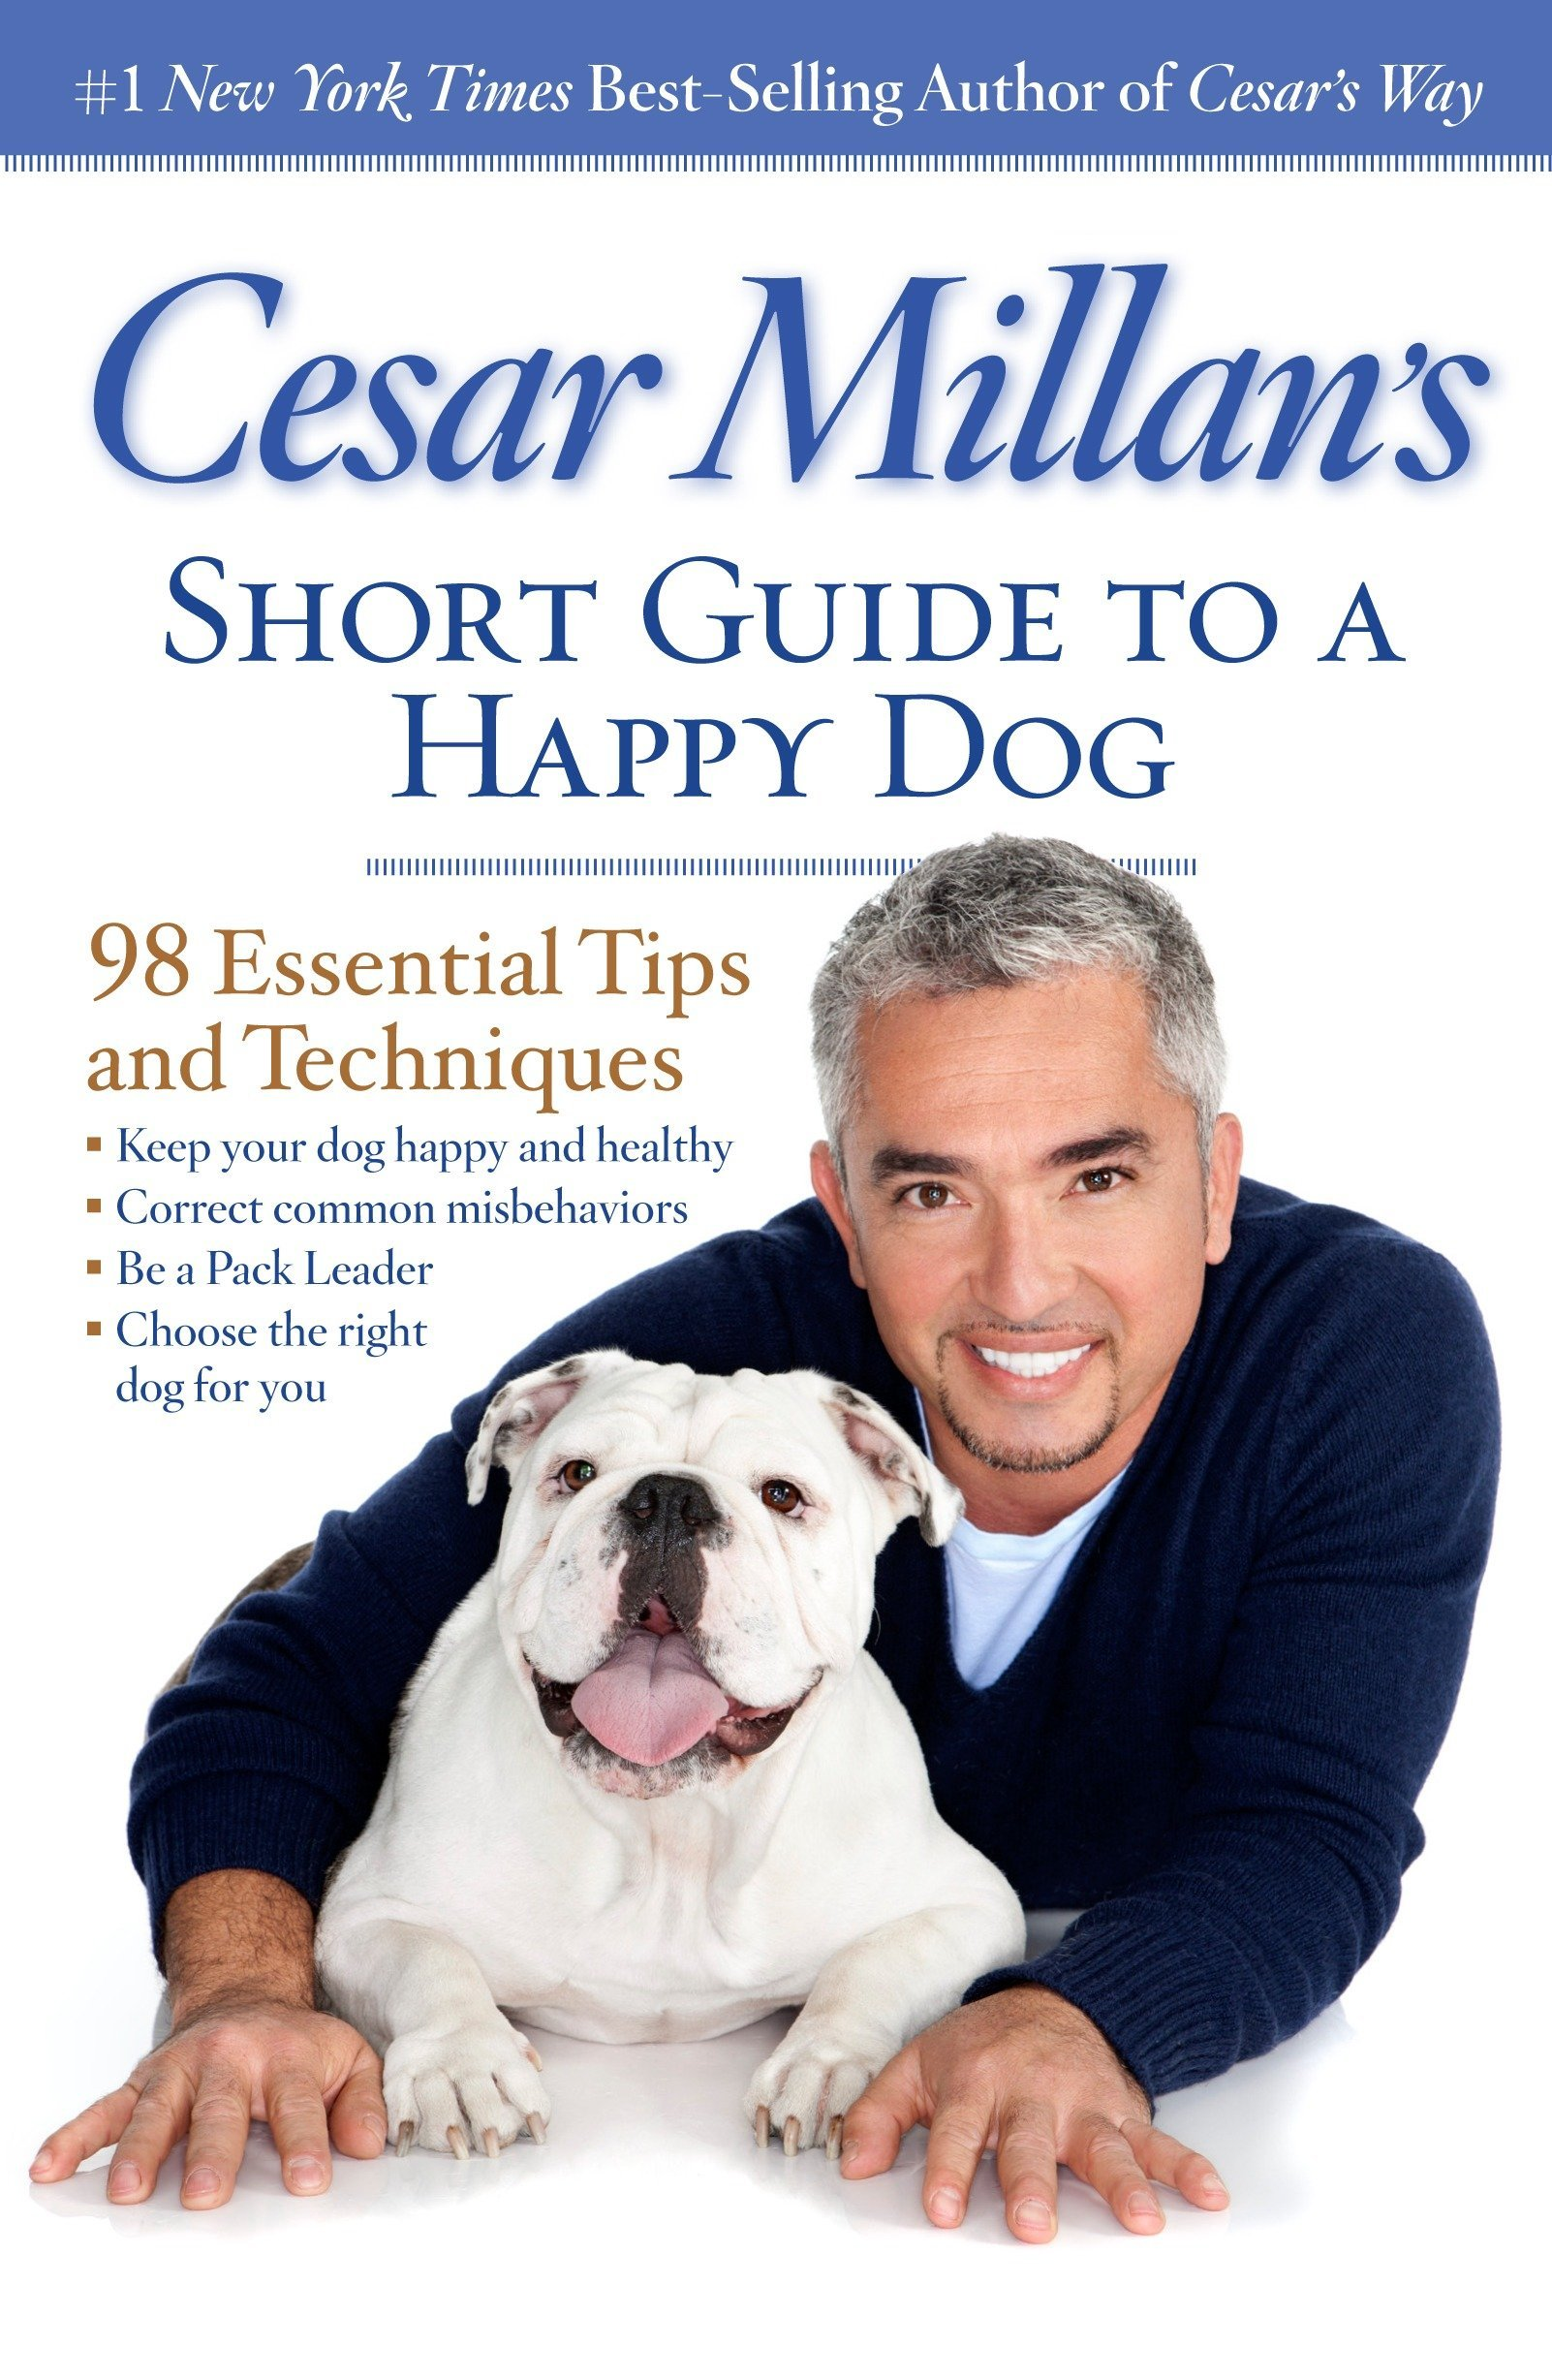 Cesar Millan's Short Guide to a Happy Dog: 98 Essential Tips and Techniques by imusti